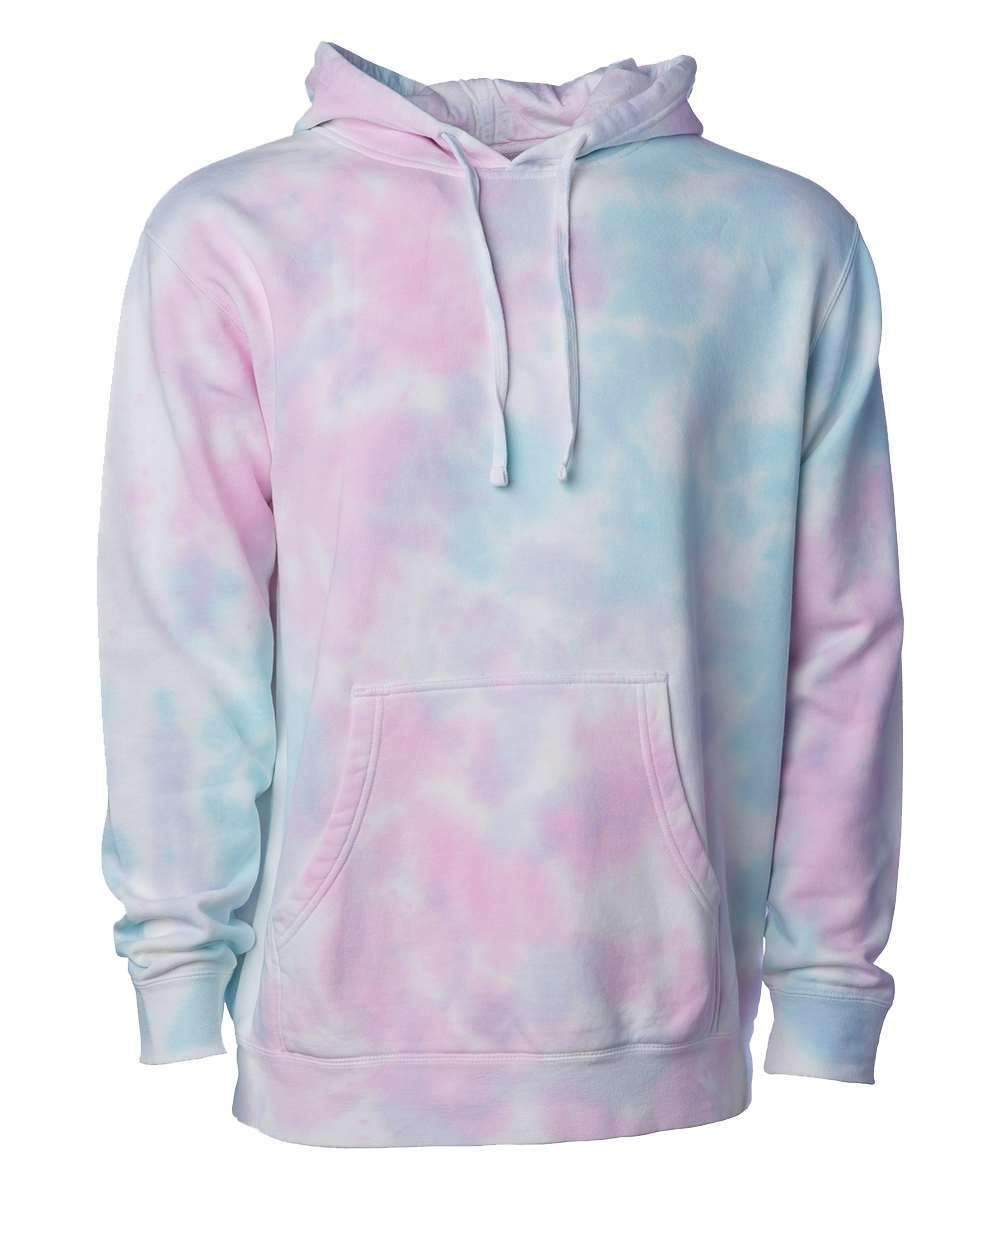 Cotton Candy Midweight Tie Dye Hoodie In 2021 Tie Dye Hoodie Tie Dye Cotton Unisex Tie [ 1250 x 1000 Pixel ]